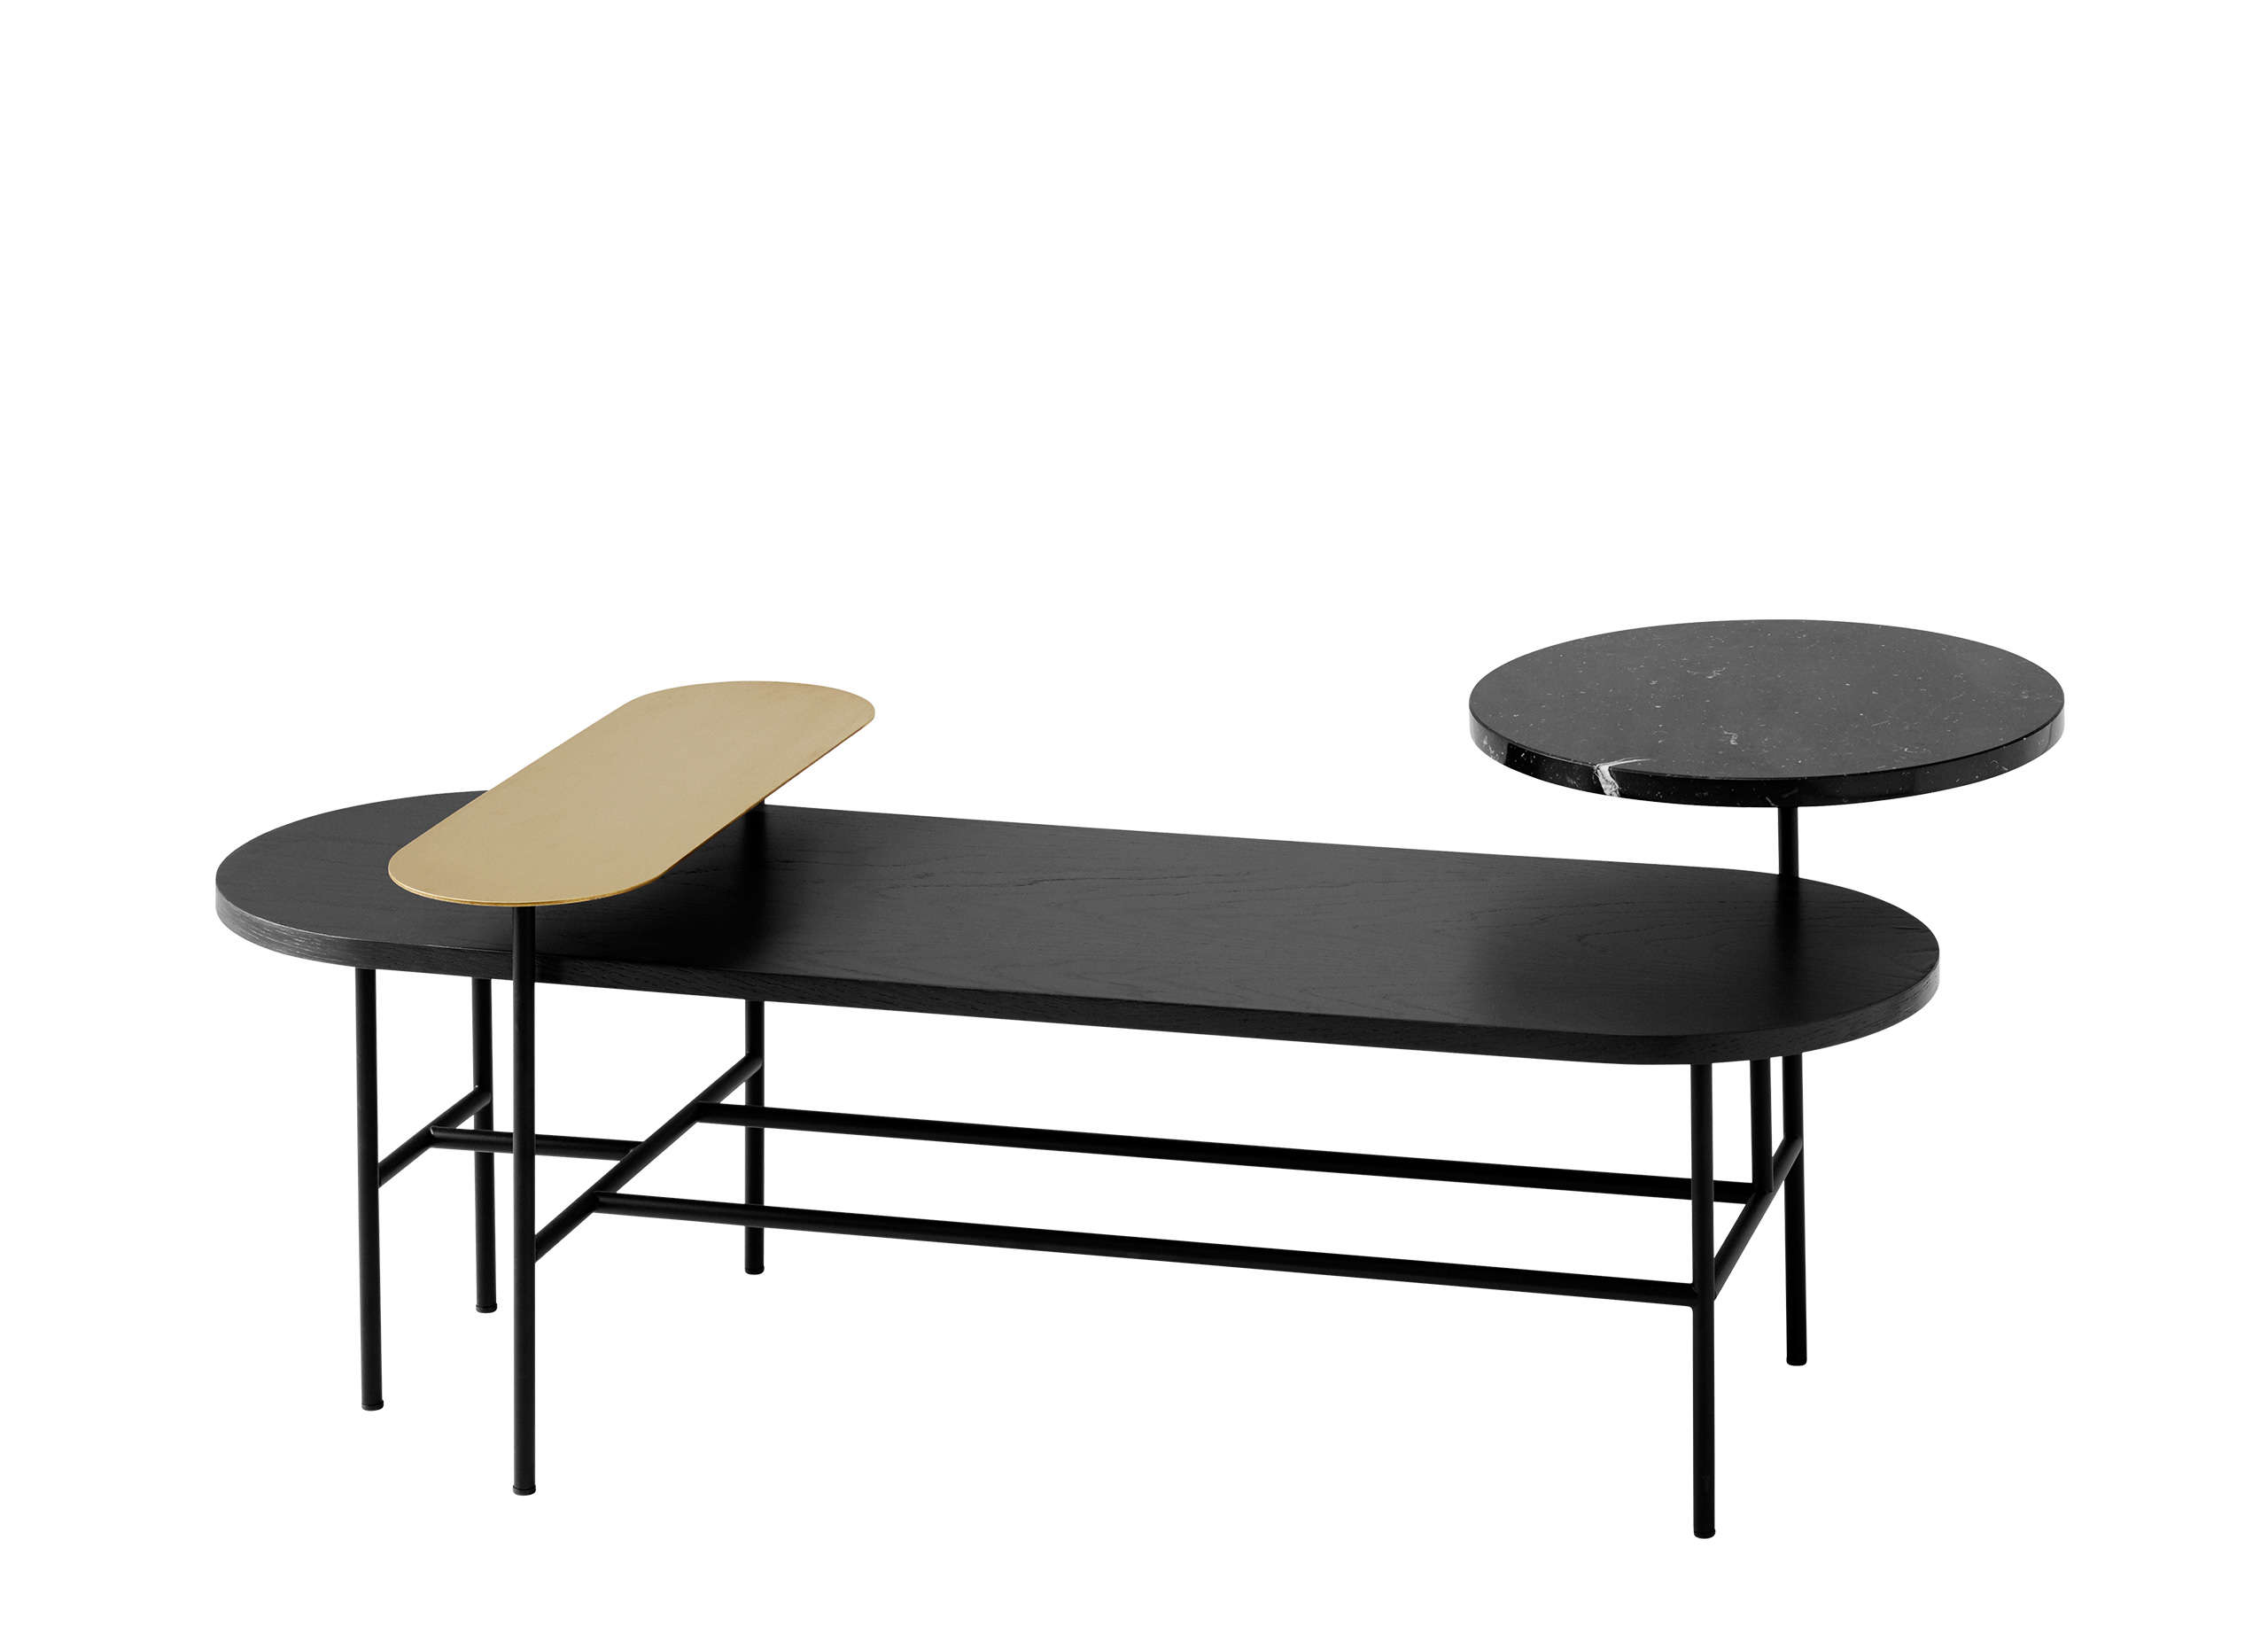 vitra couchtisch free coffee table with vitra couchtisch top metal side table vitra with vitra. Black Bedroom Furniture Sets. Home Design Ideas